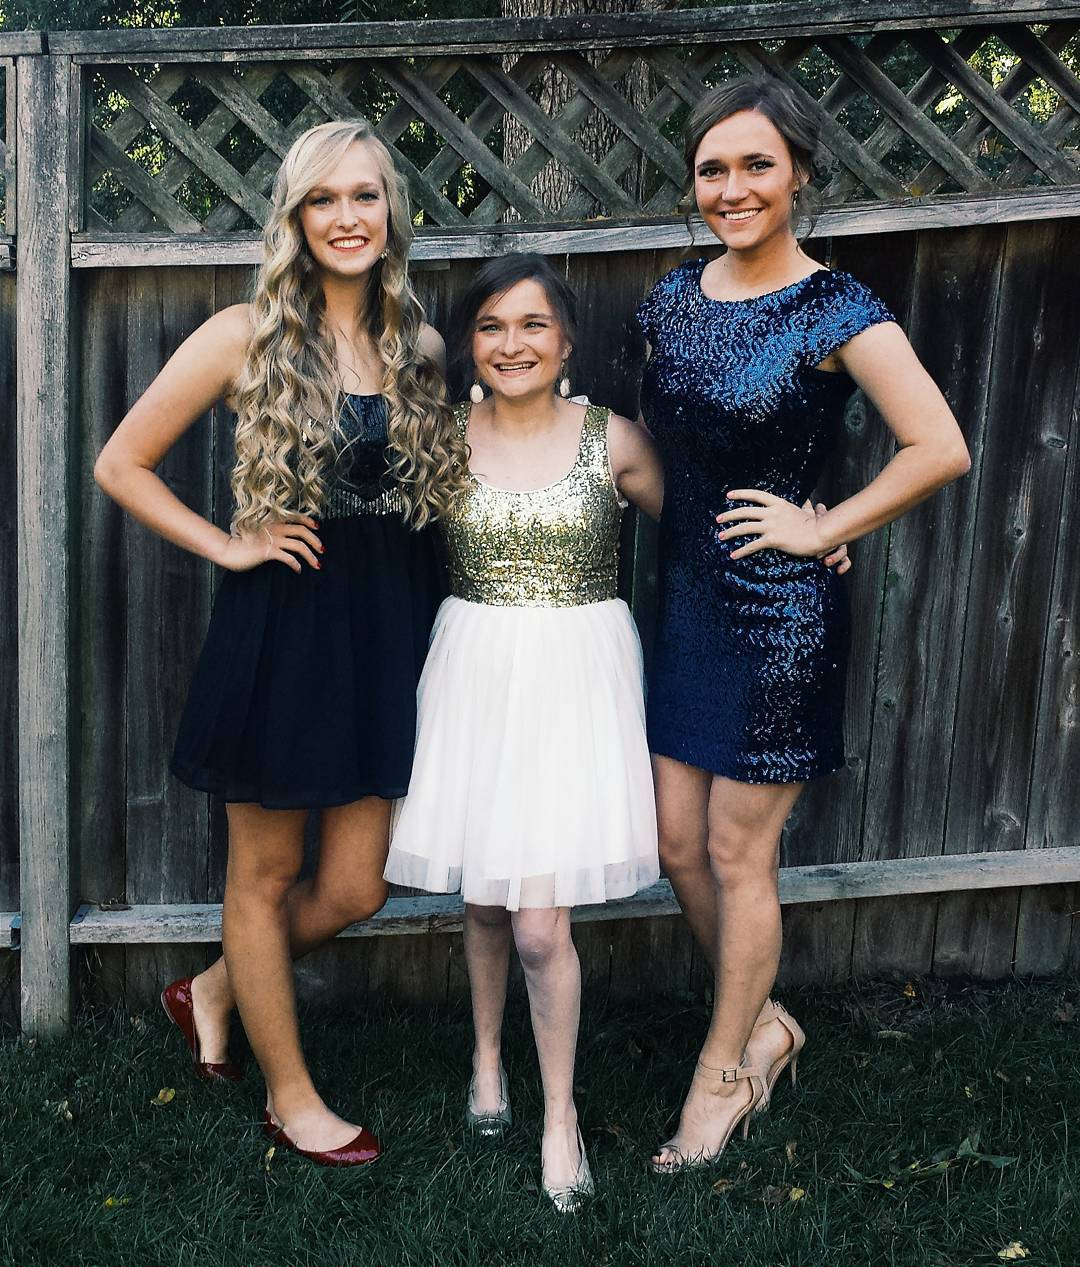 18-Natalie-Alexis-and-Kelsey